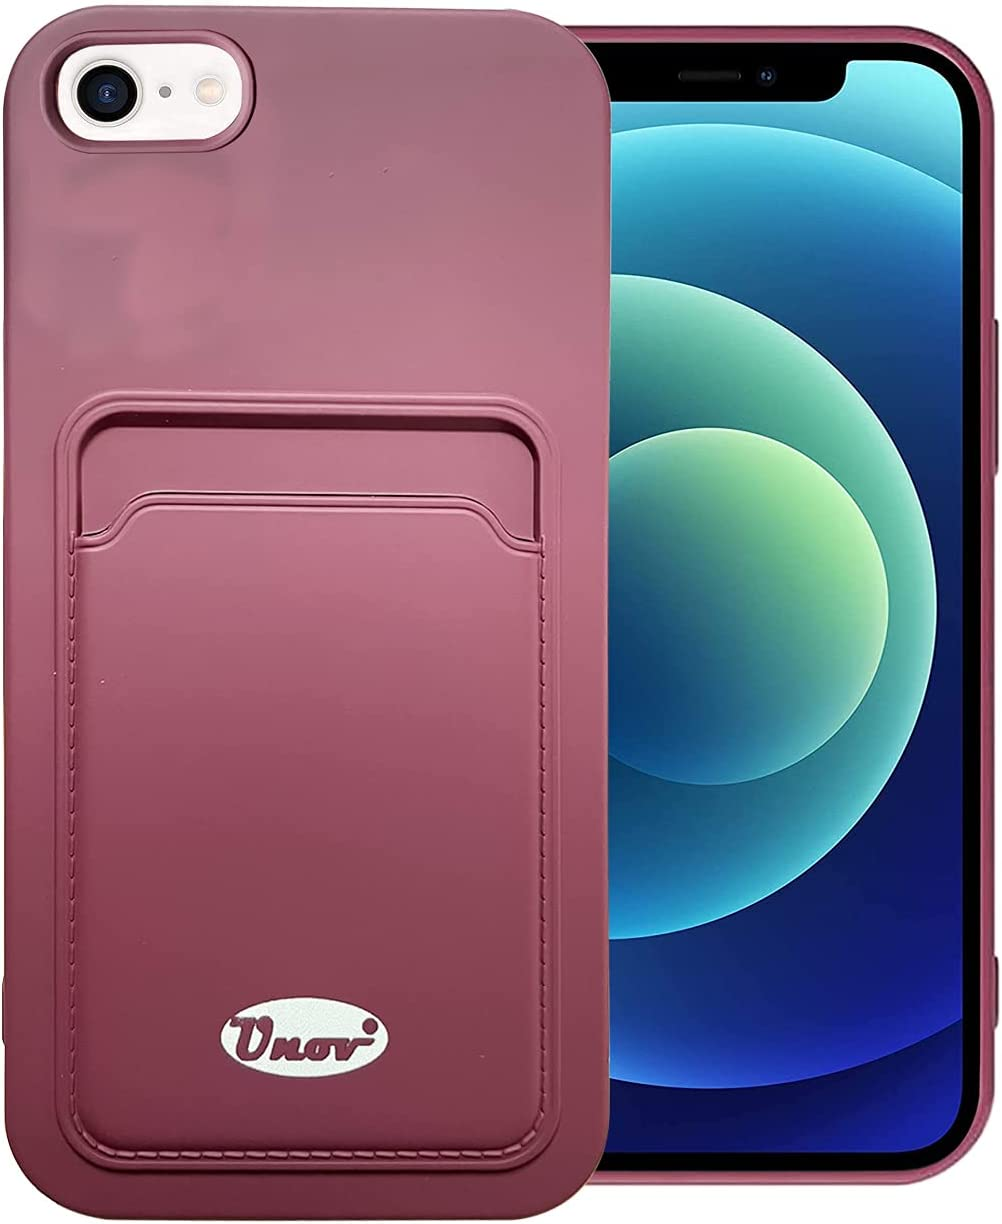 Unov Case Compatible with iPhone SE (2020) iPhone 8 iPhone 7 iPhone 6s iPhone 6 inch Soft Silicone Slim Protective Case with Card Holder Sleeve Wallet Card Pocket Cover Case (Wine Red)